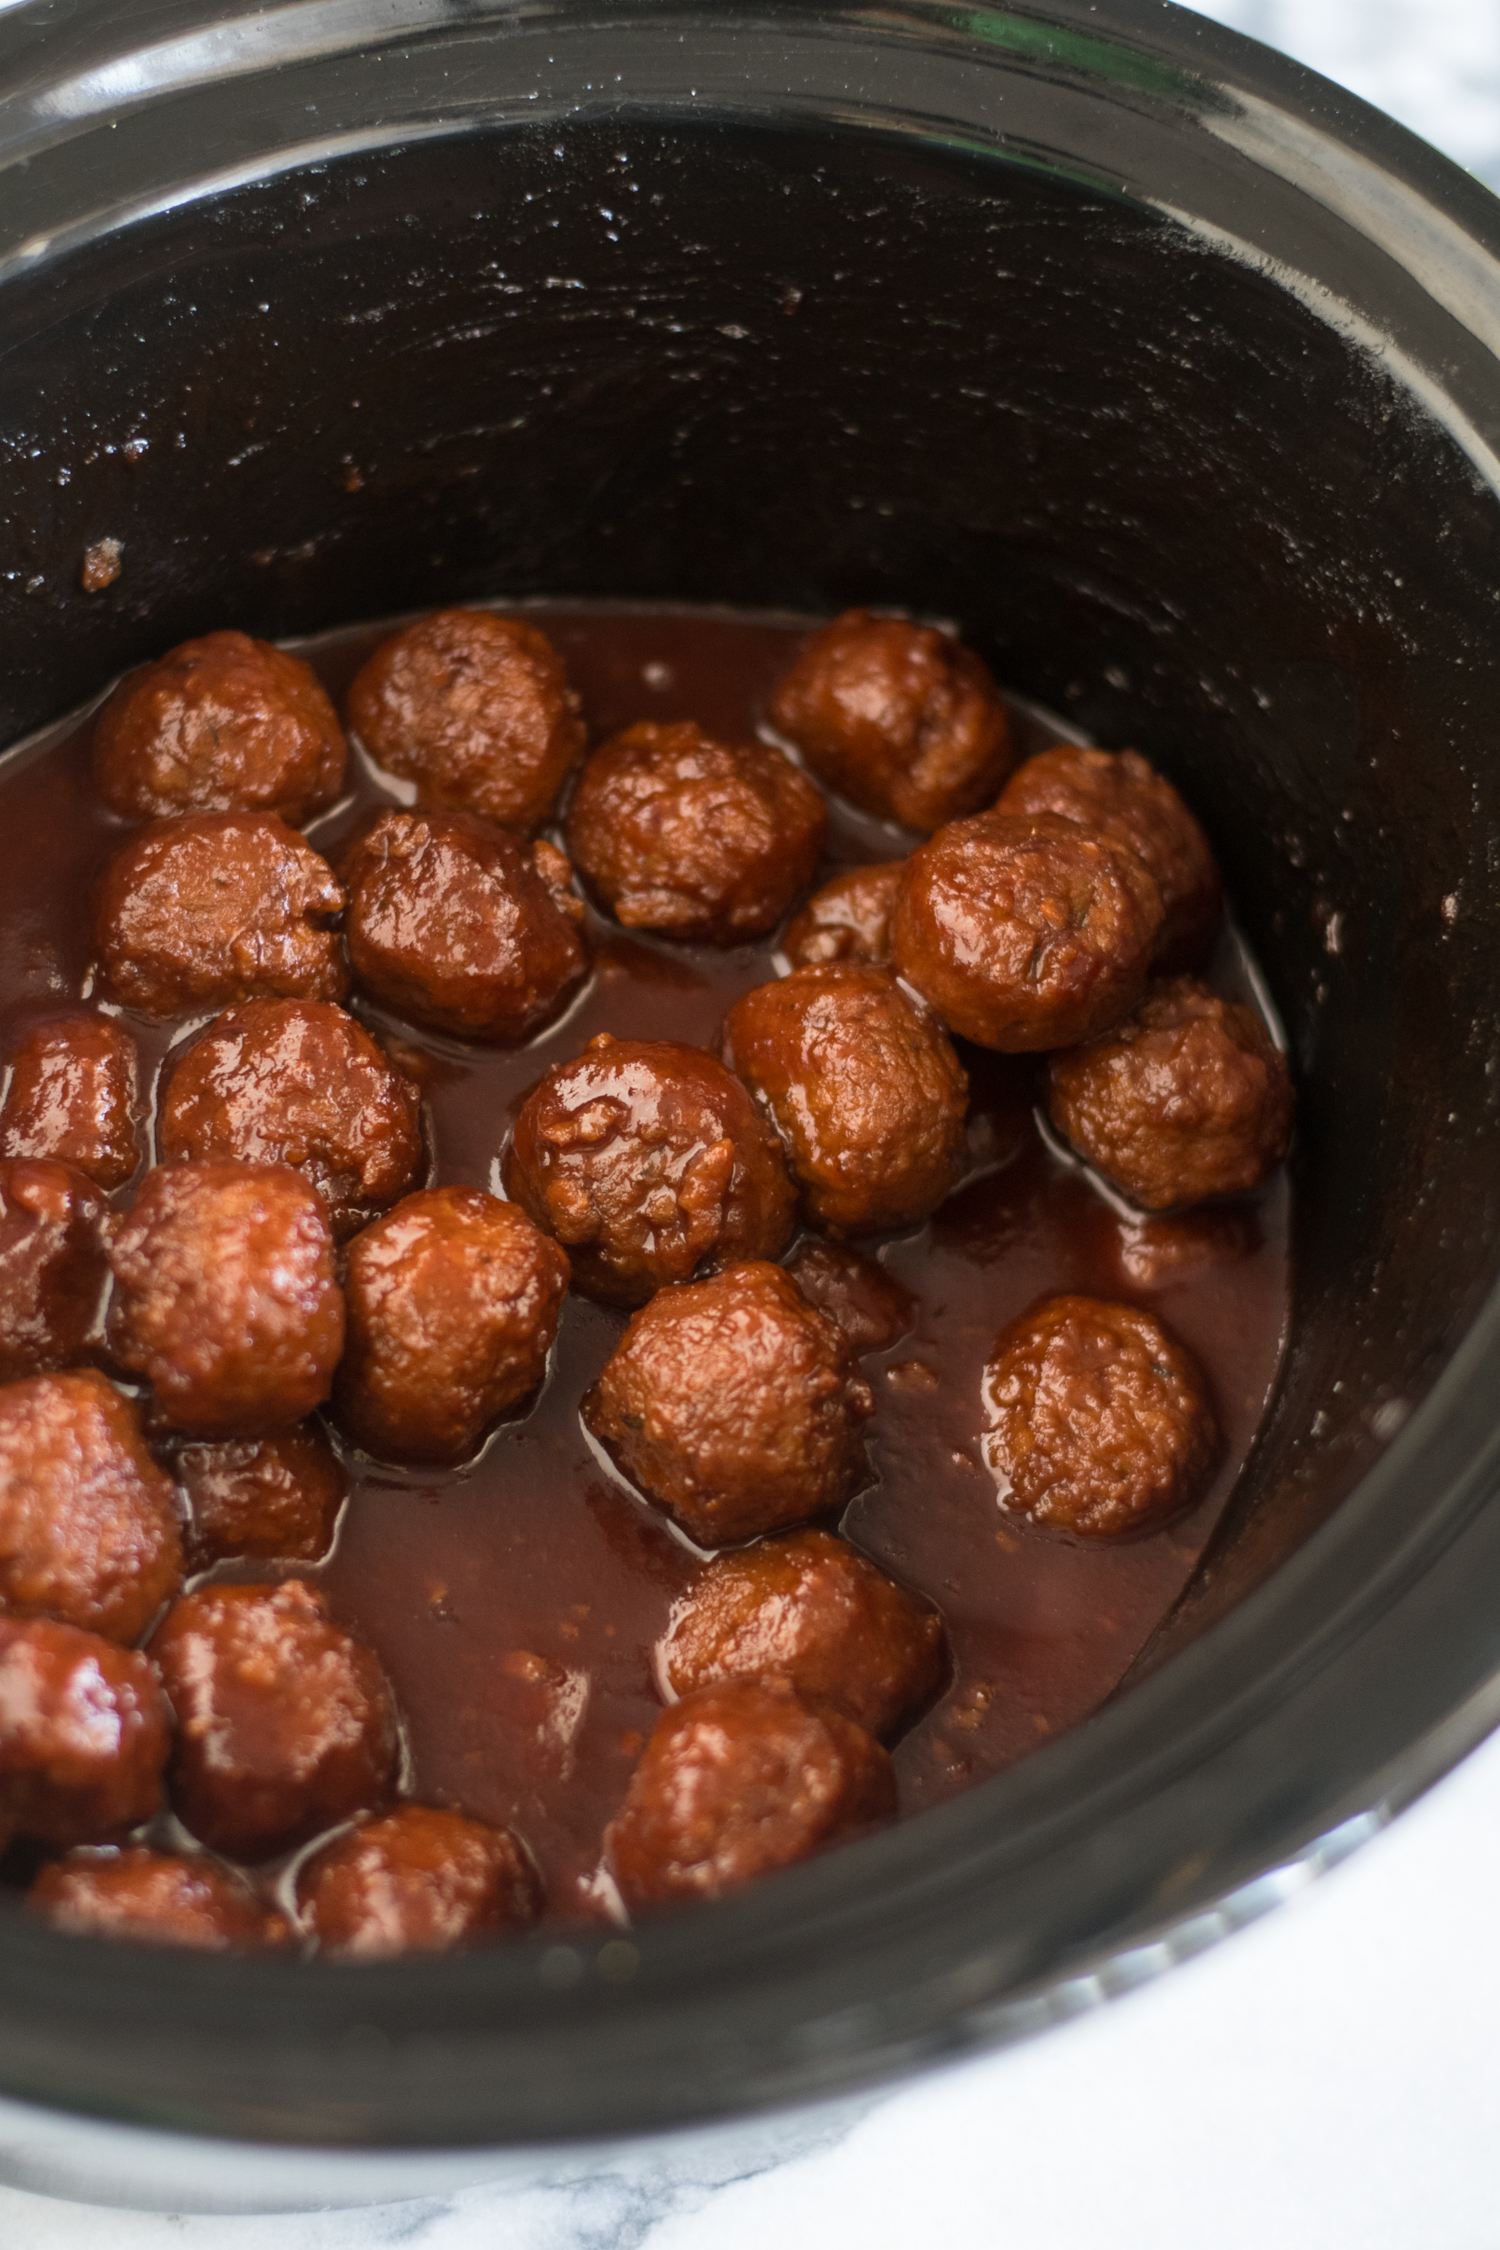 Slow Cooker Vegan Chili Sauce and Grape Jelly Meatballs are perfect for game day or holiday entertaining! #vegan #Christmas #Holidays #Recipes #Veganrecipes #vegetarian